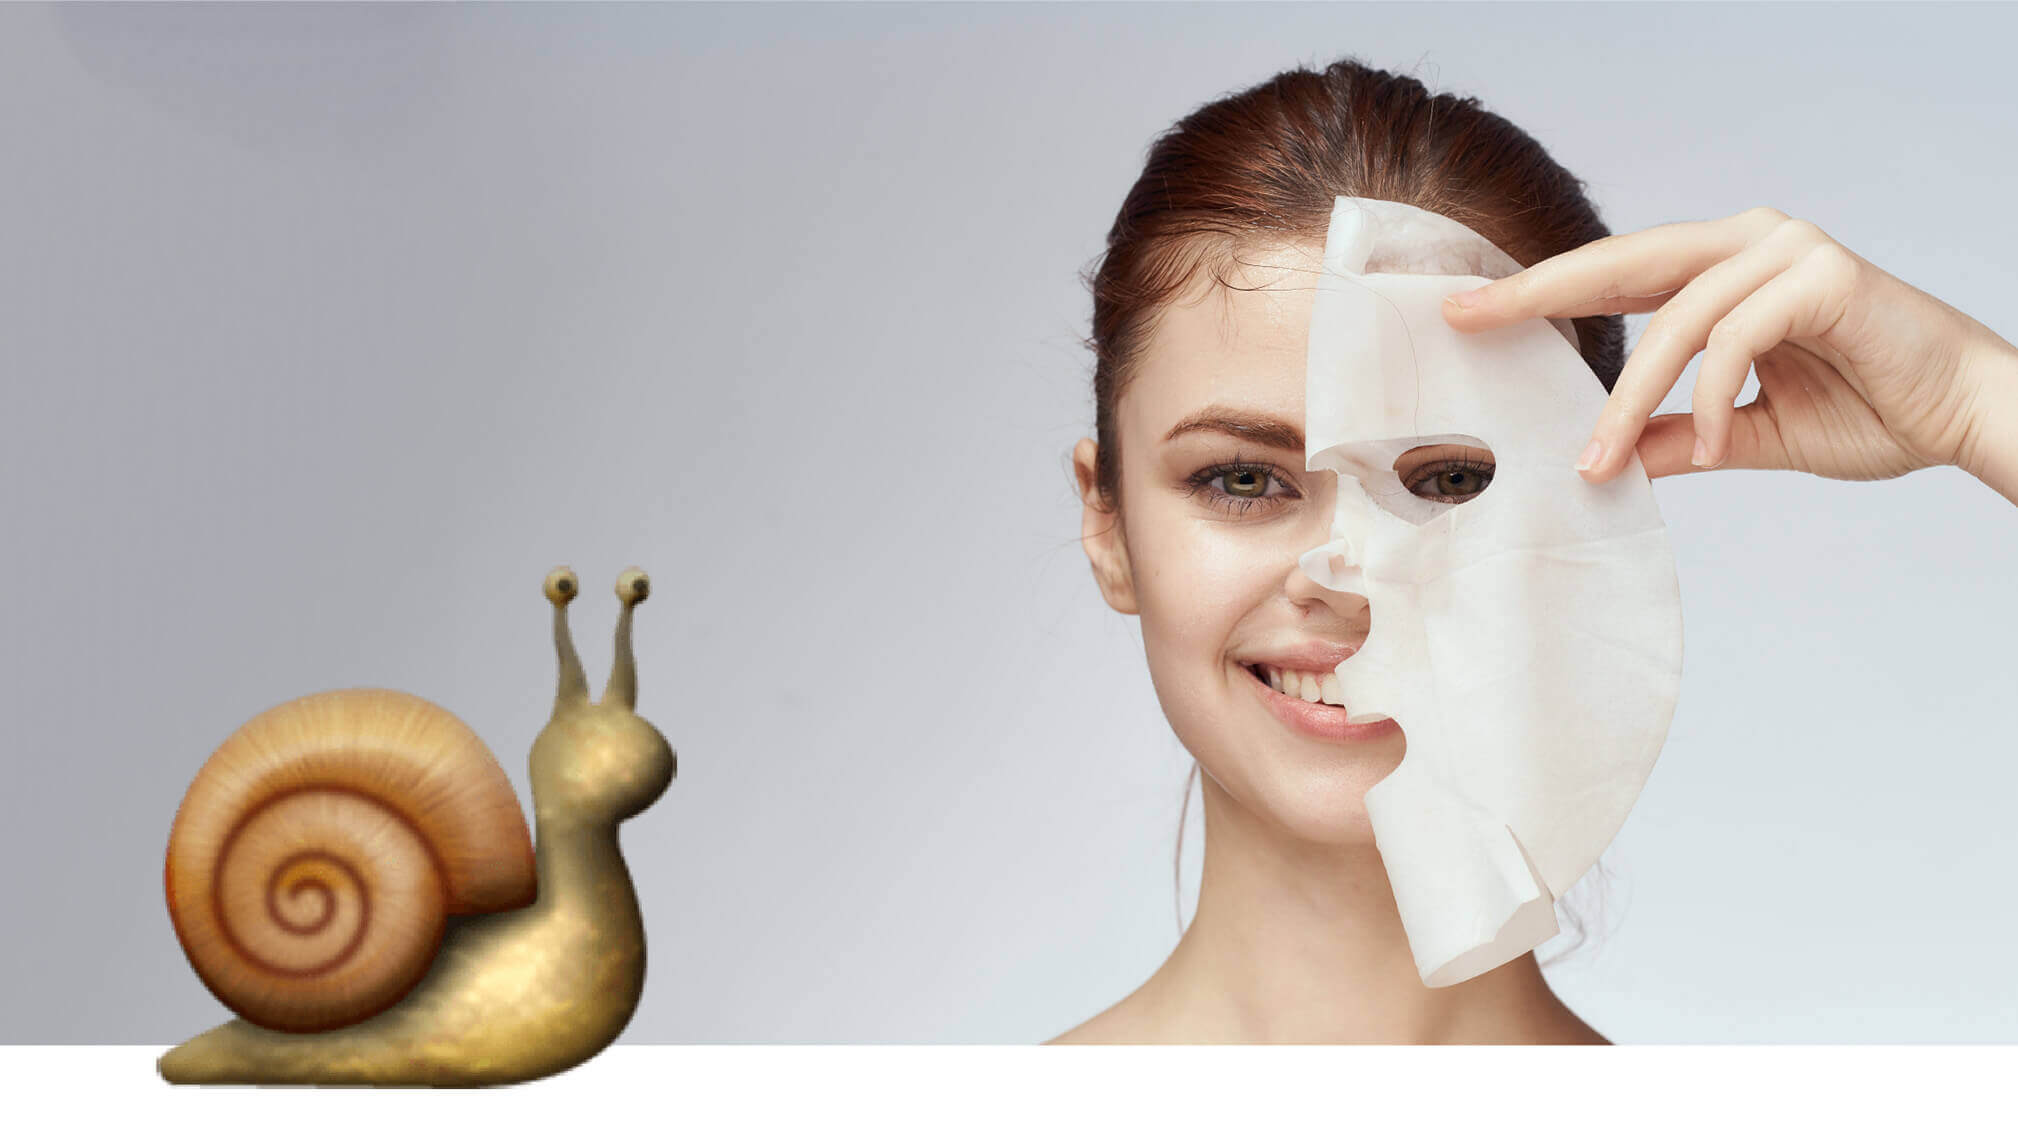 Woman holding a snail sheet mask next to face